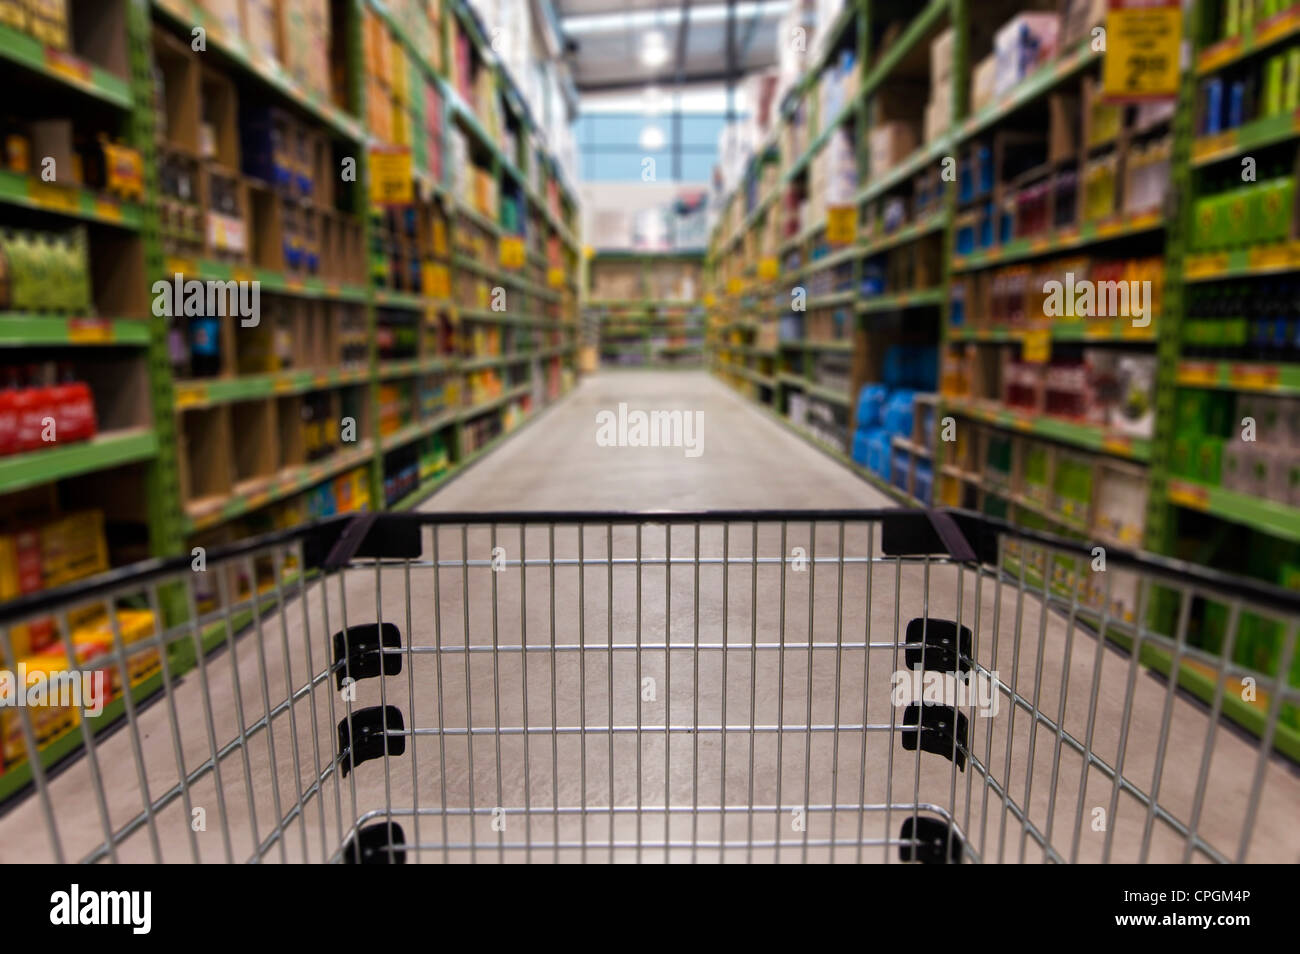 An empty shopping trolley cart in a supermarket. - Stock Image